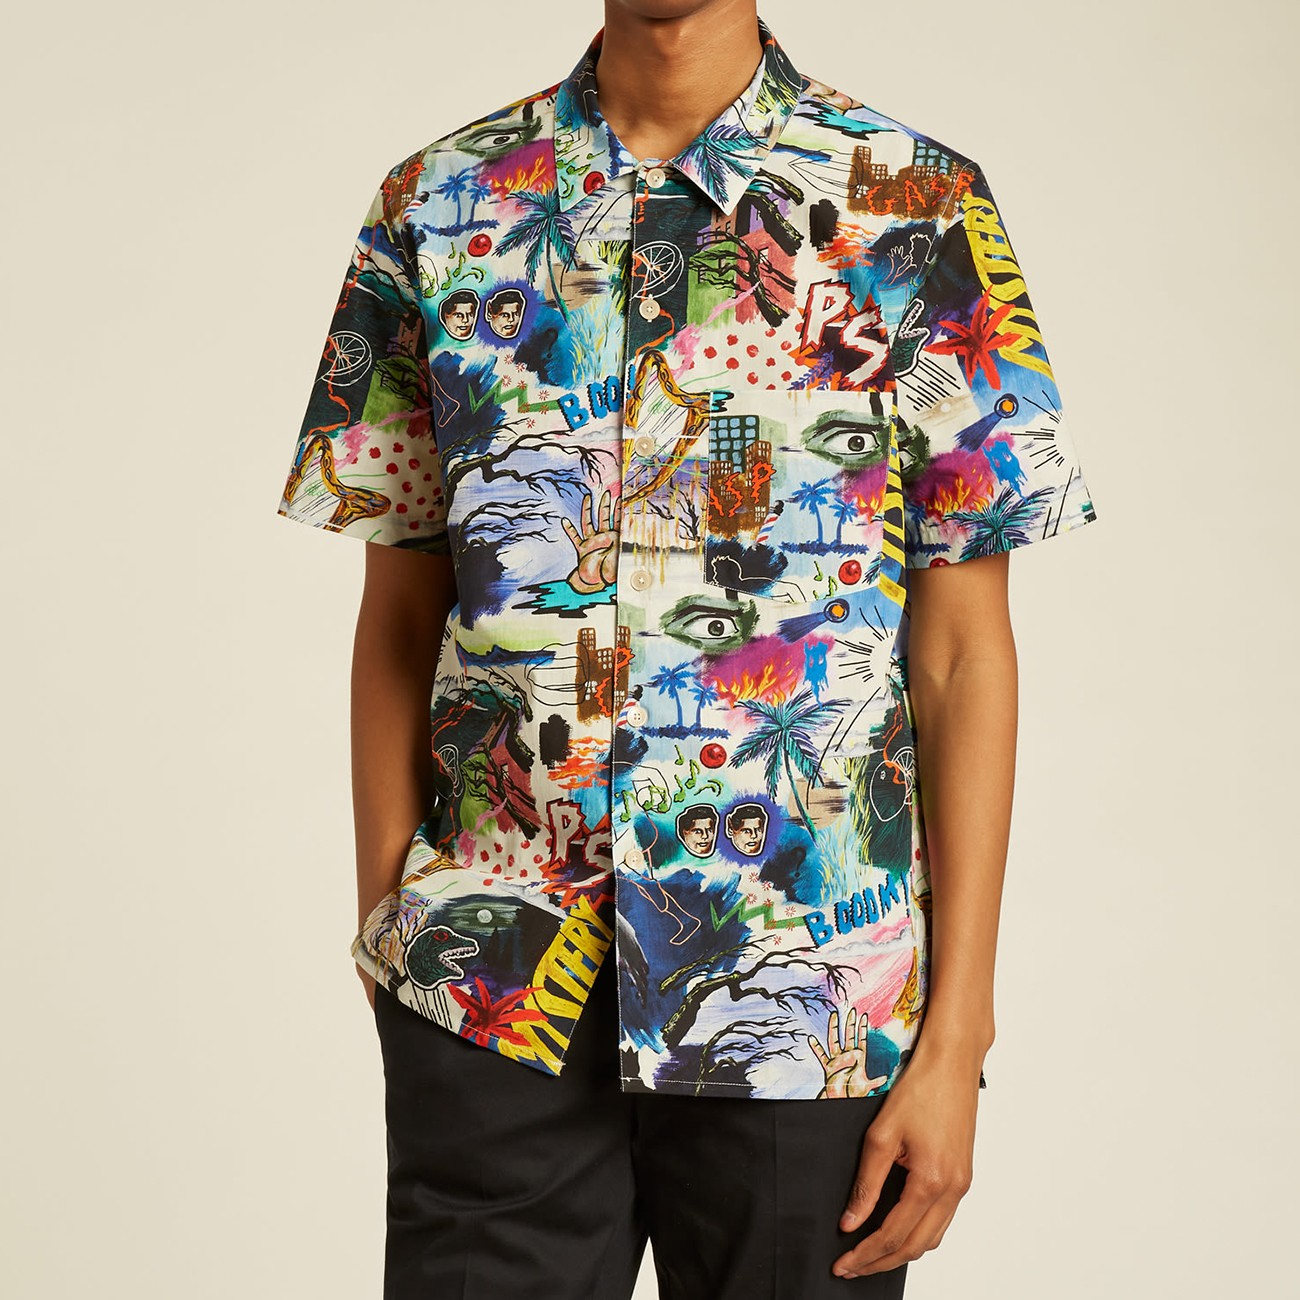 CASUAL COTTON SHIRT WITH ORGANIC PRINT PAUL SMITH M1R-832T-F21236-92